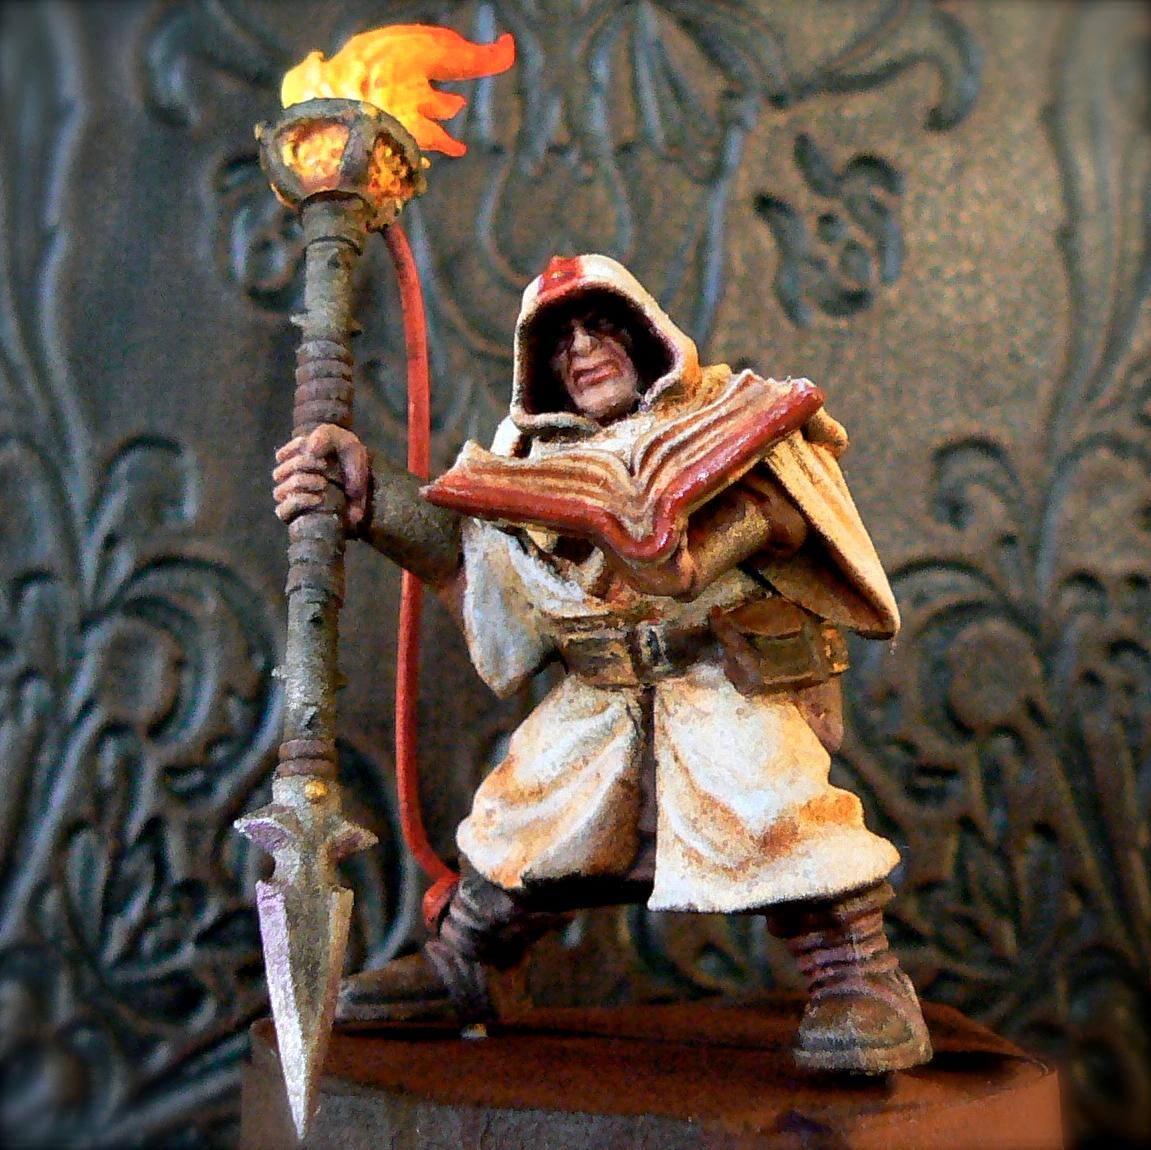 Book, Flames, Hood, Inquisitor